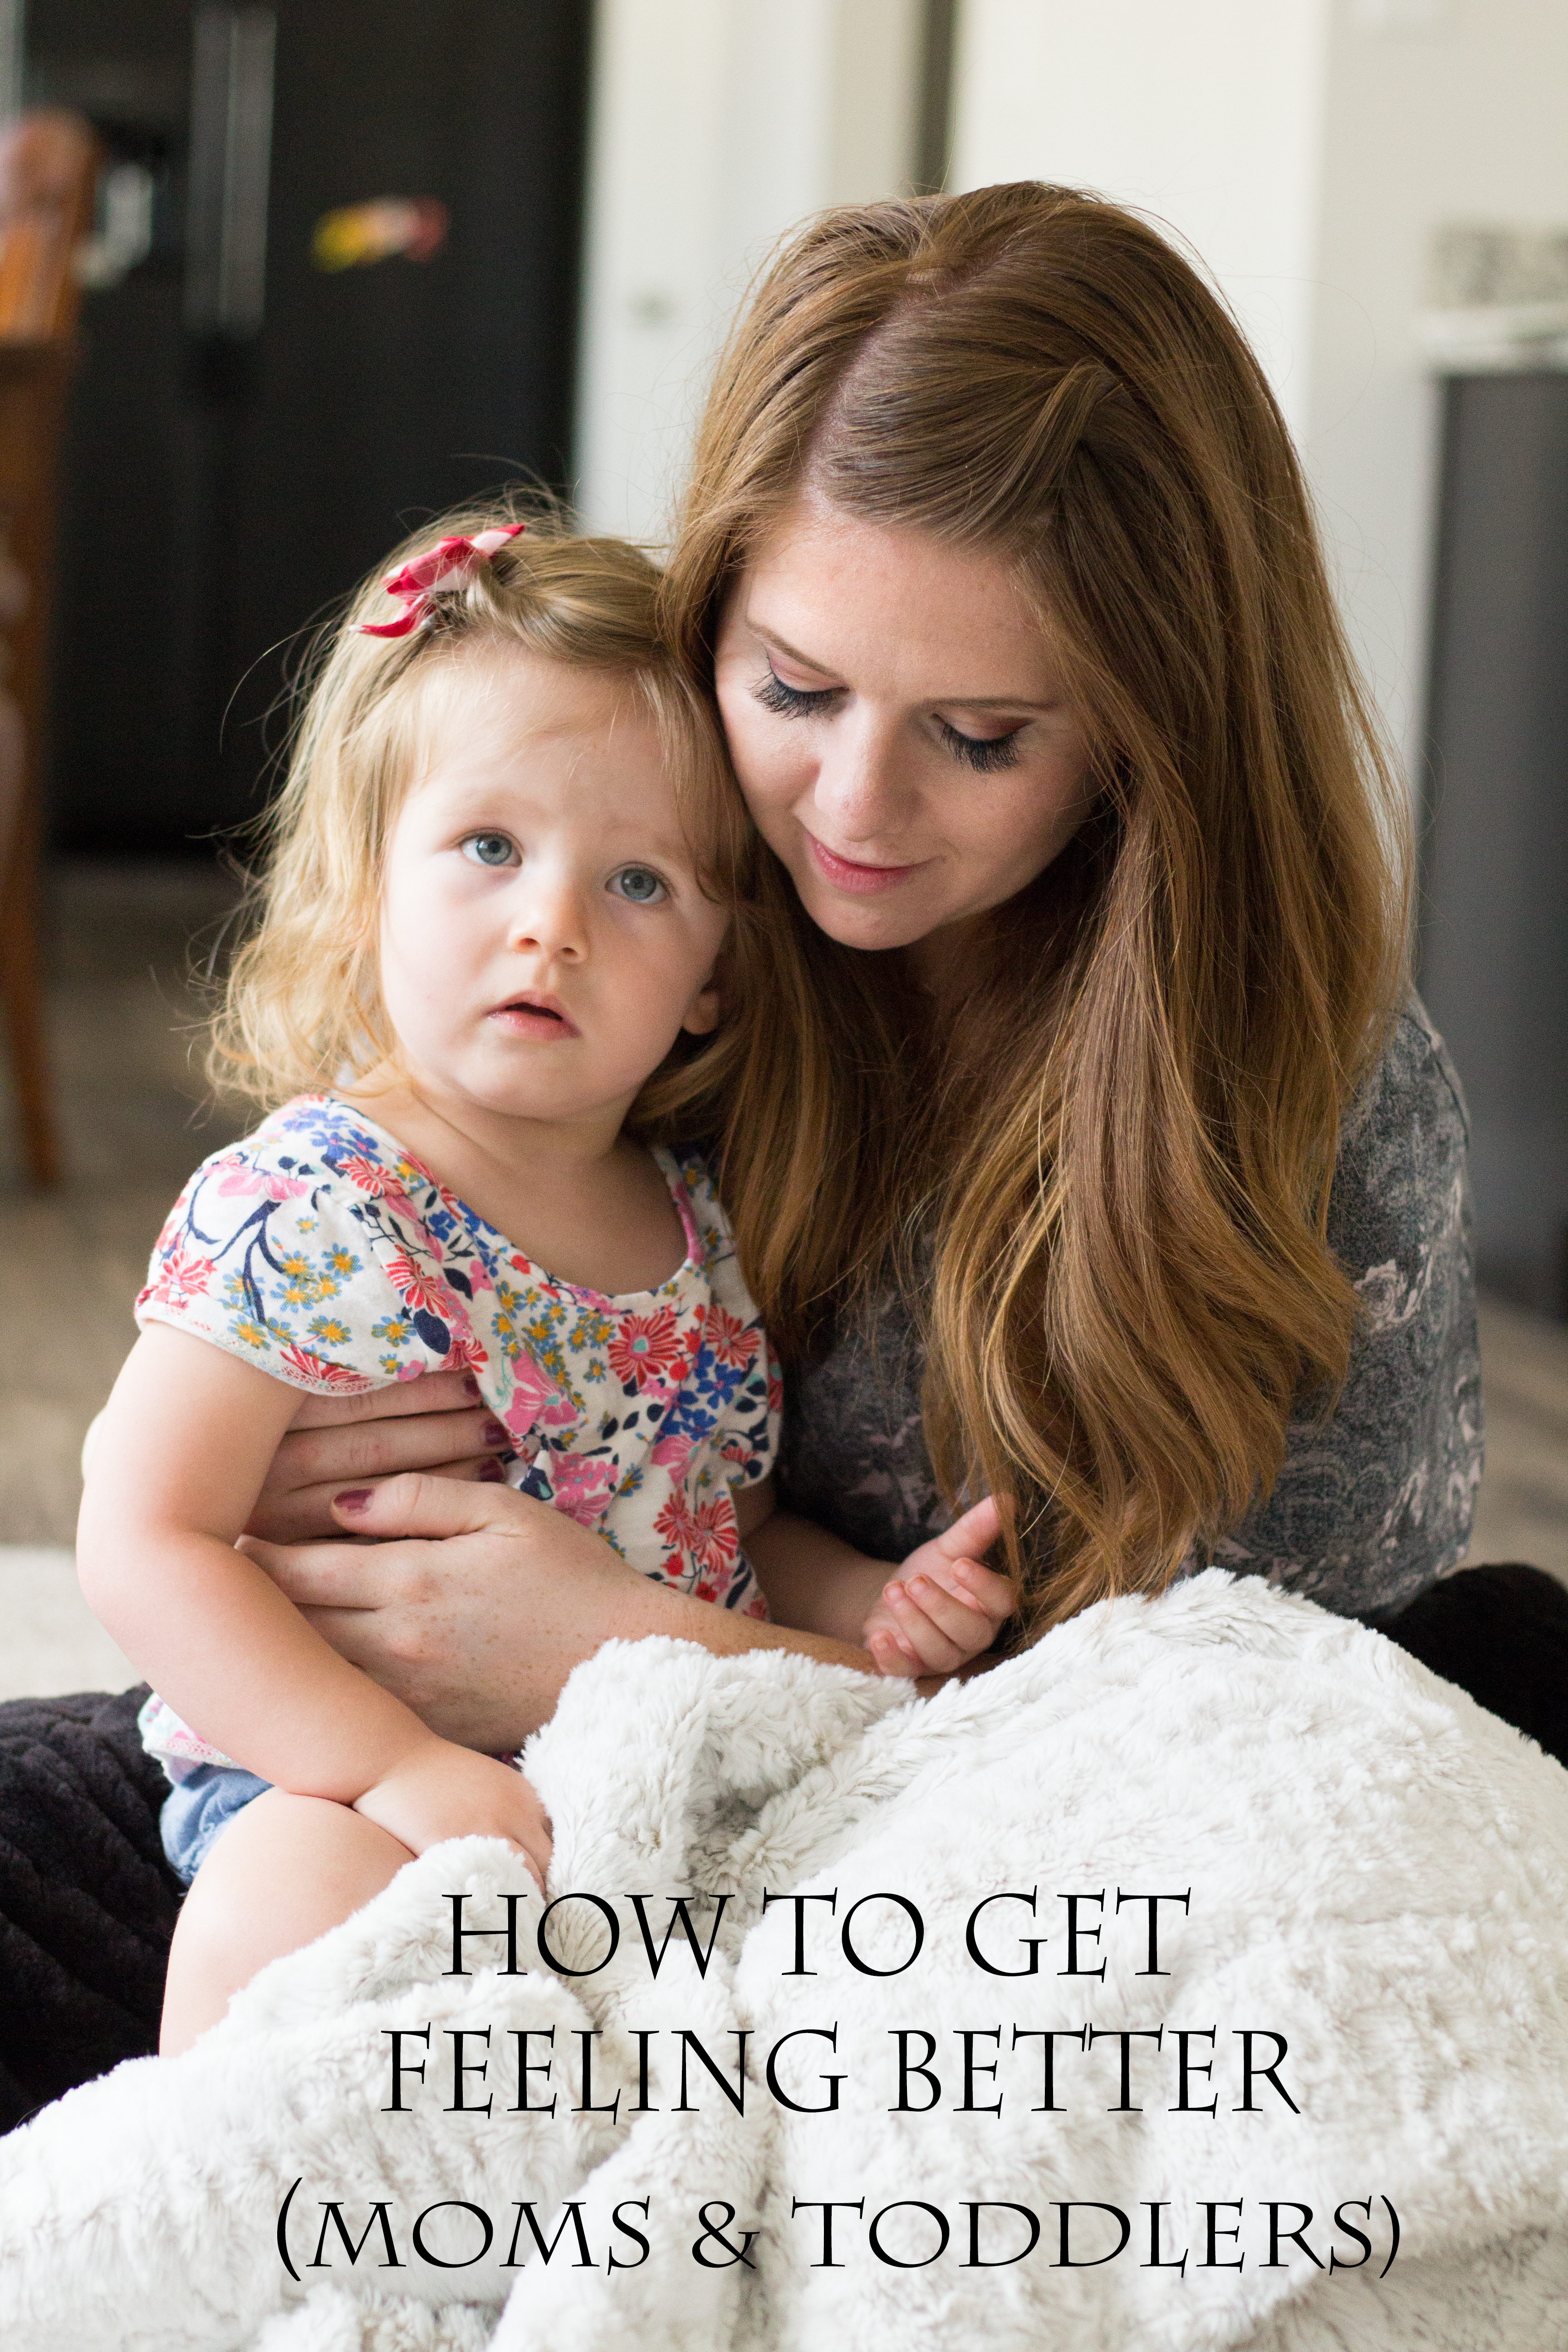 How to get feeling better (moms and kids)